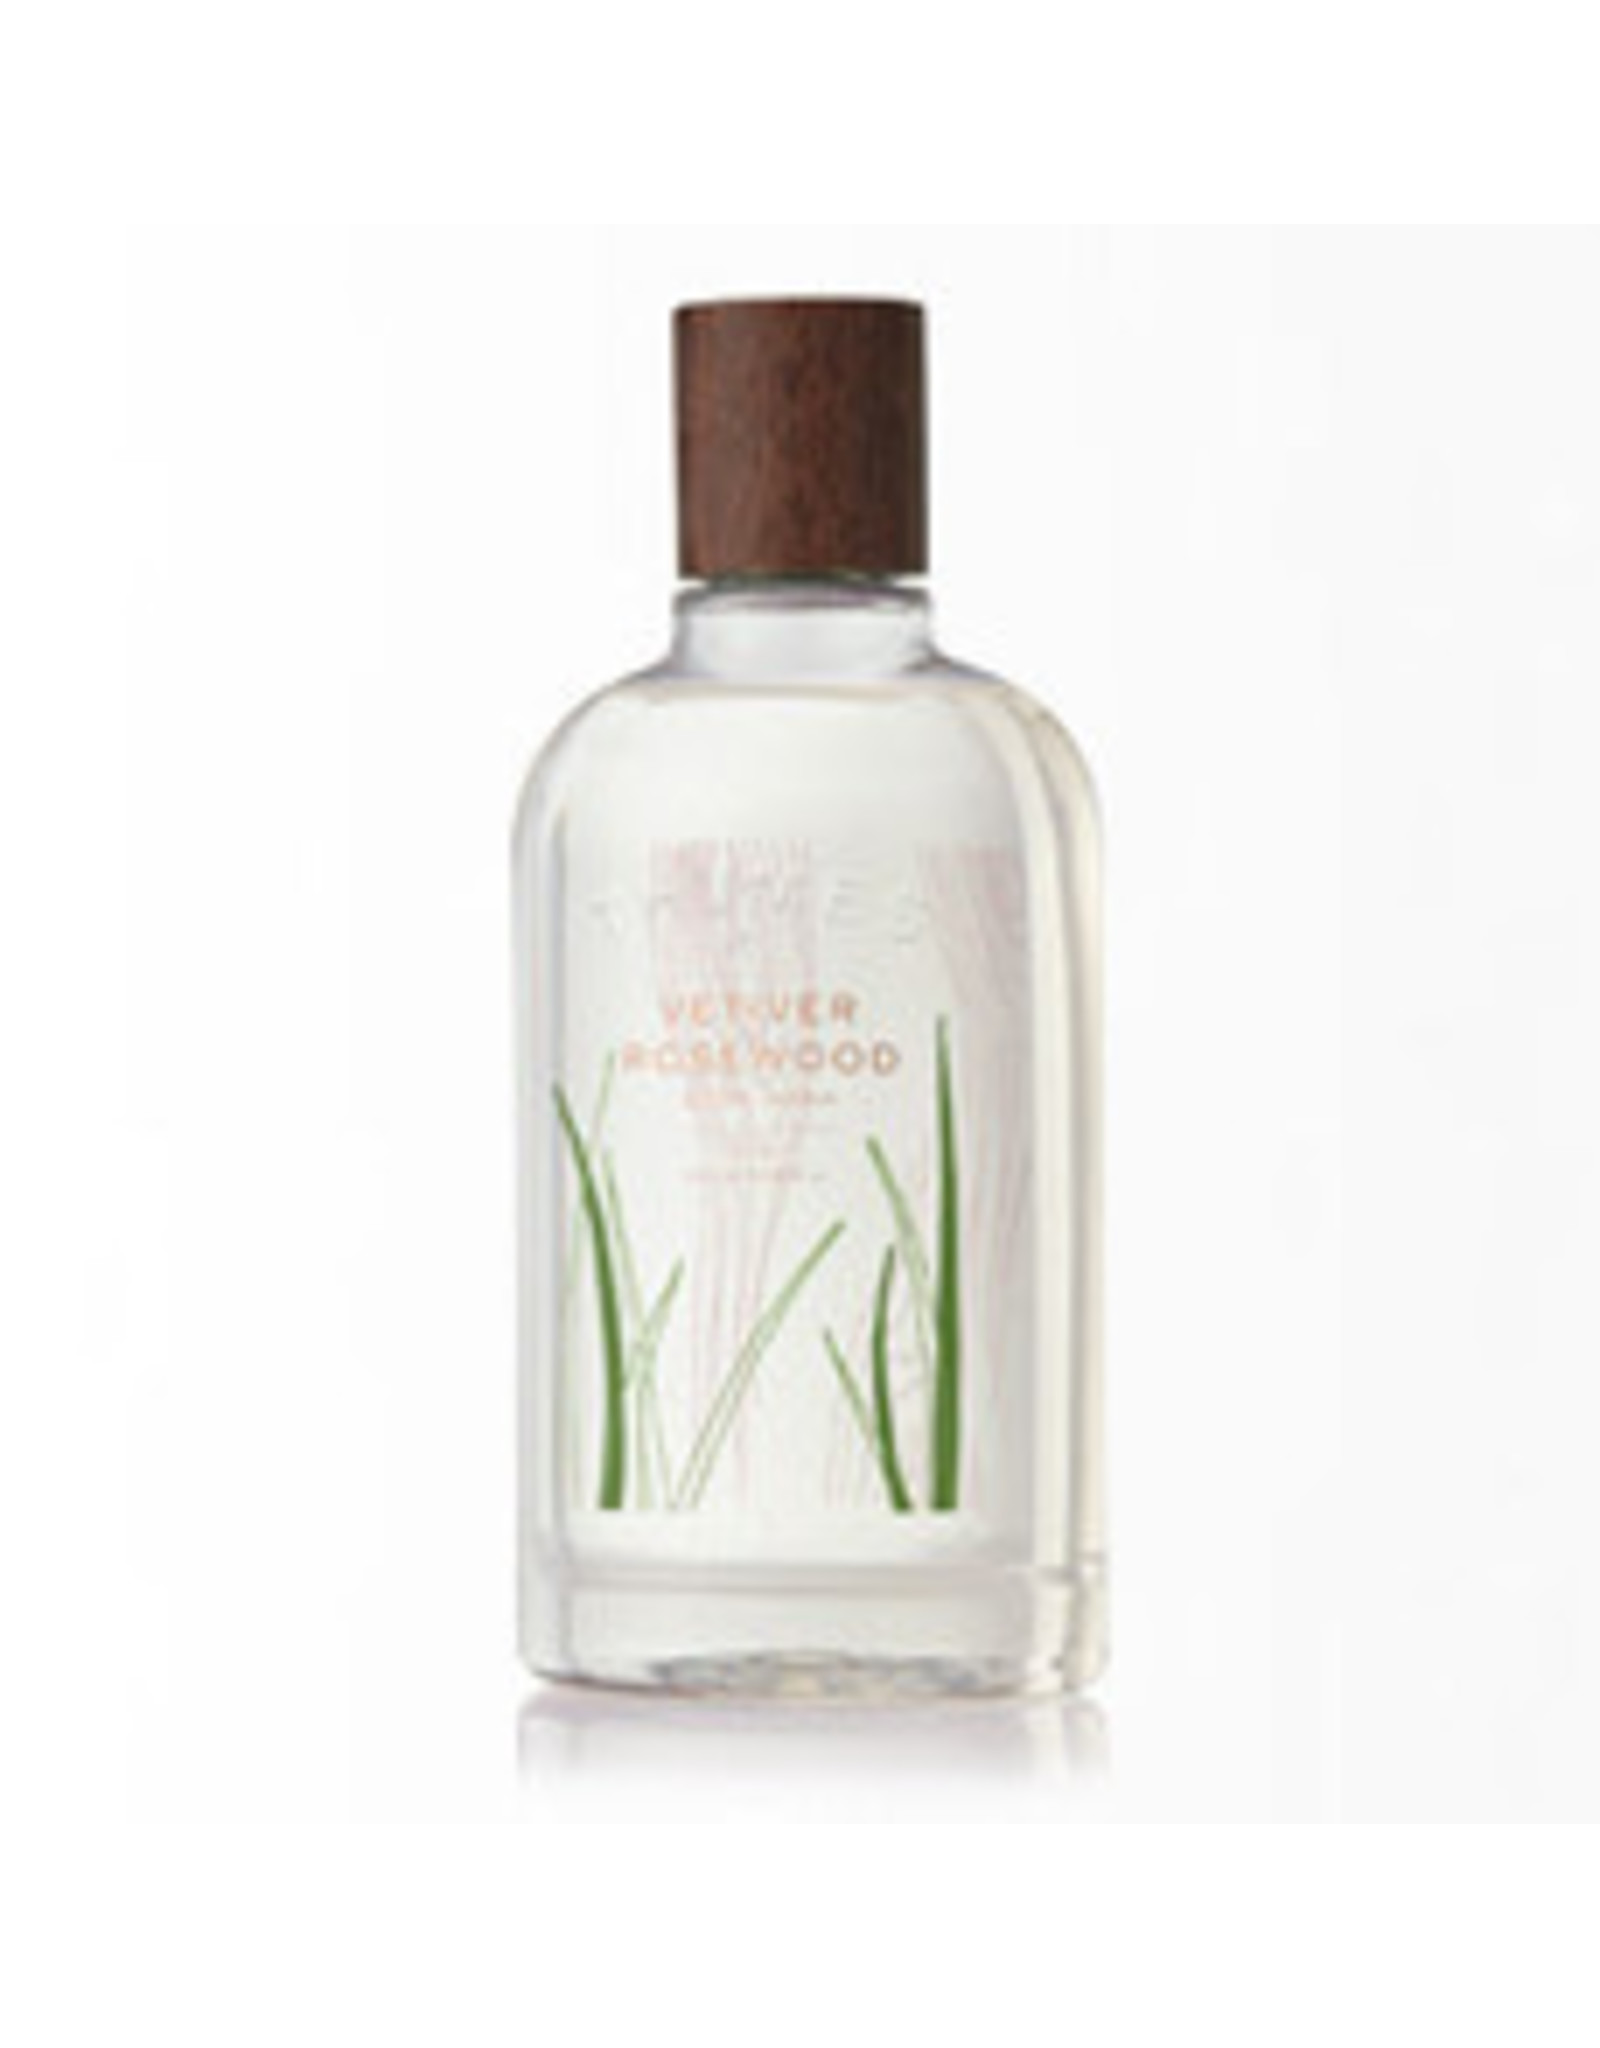 Thymes Vetiver Rosewood Body Wash